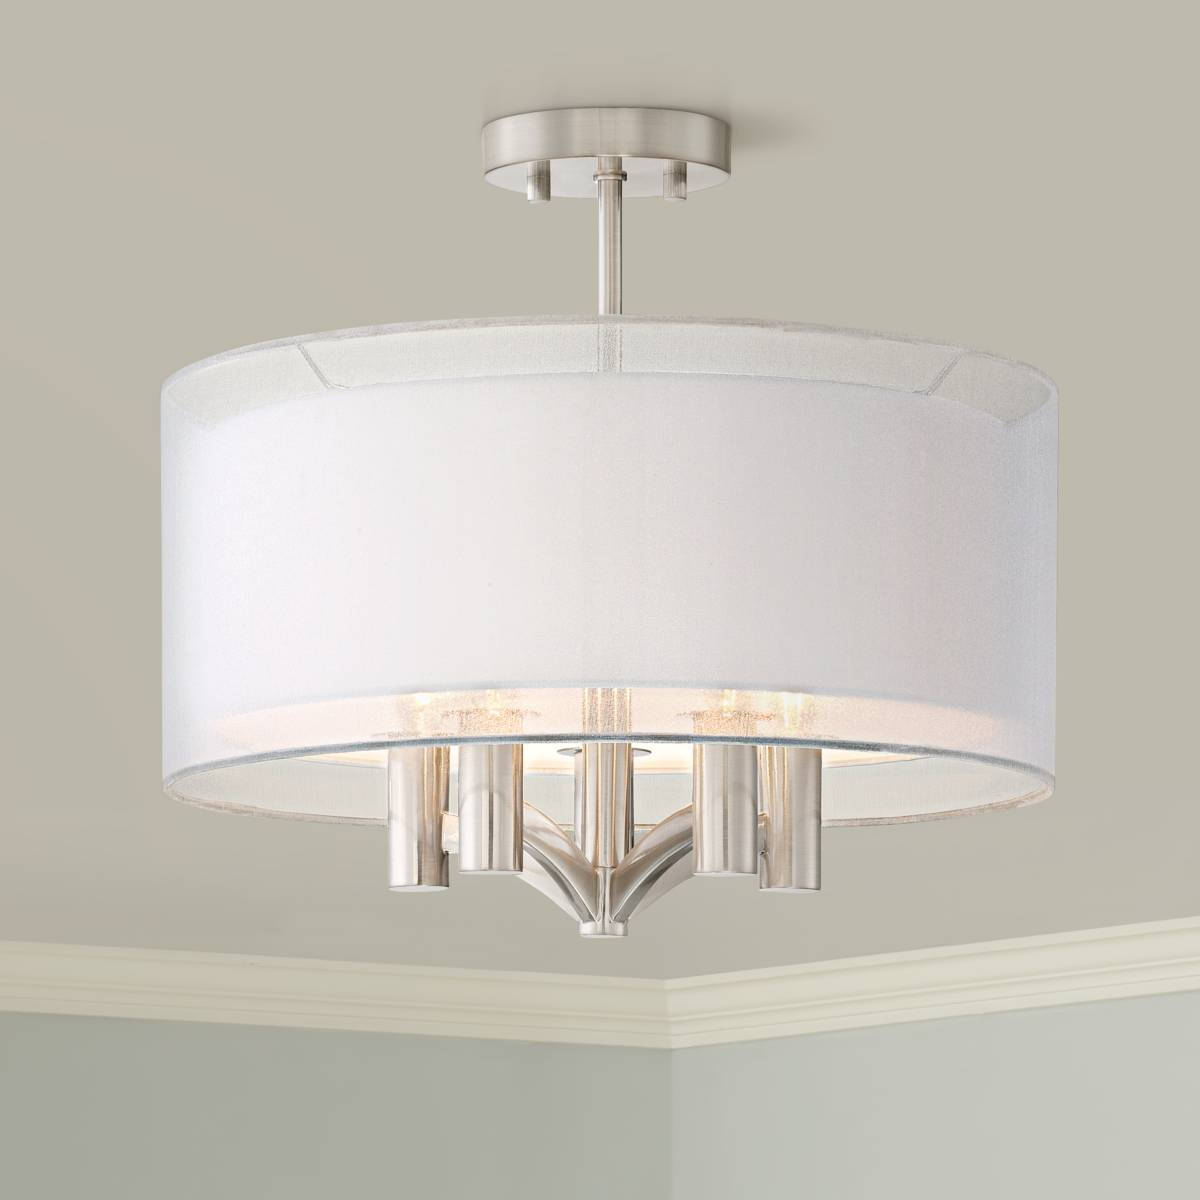 Lamp Plus Stores: Stylish Ceiling Light Designs